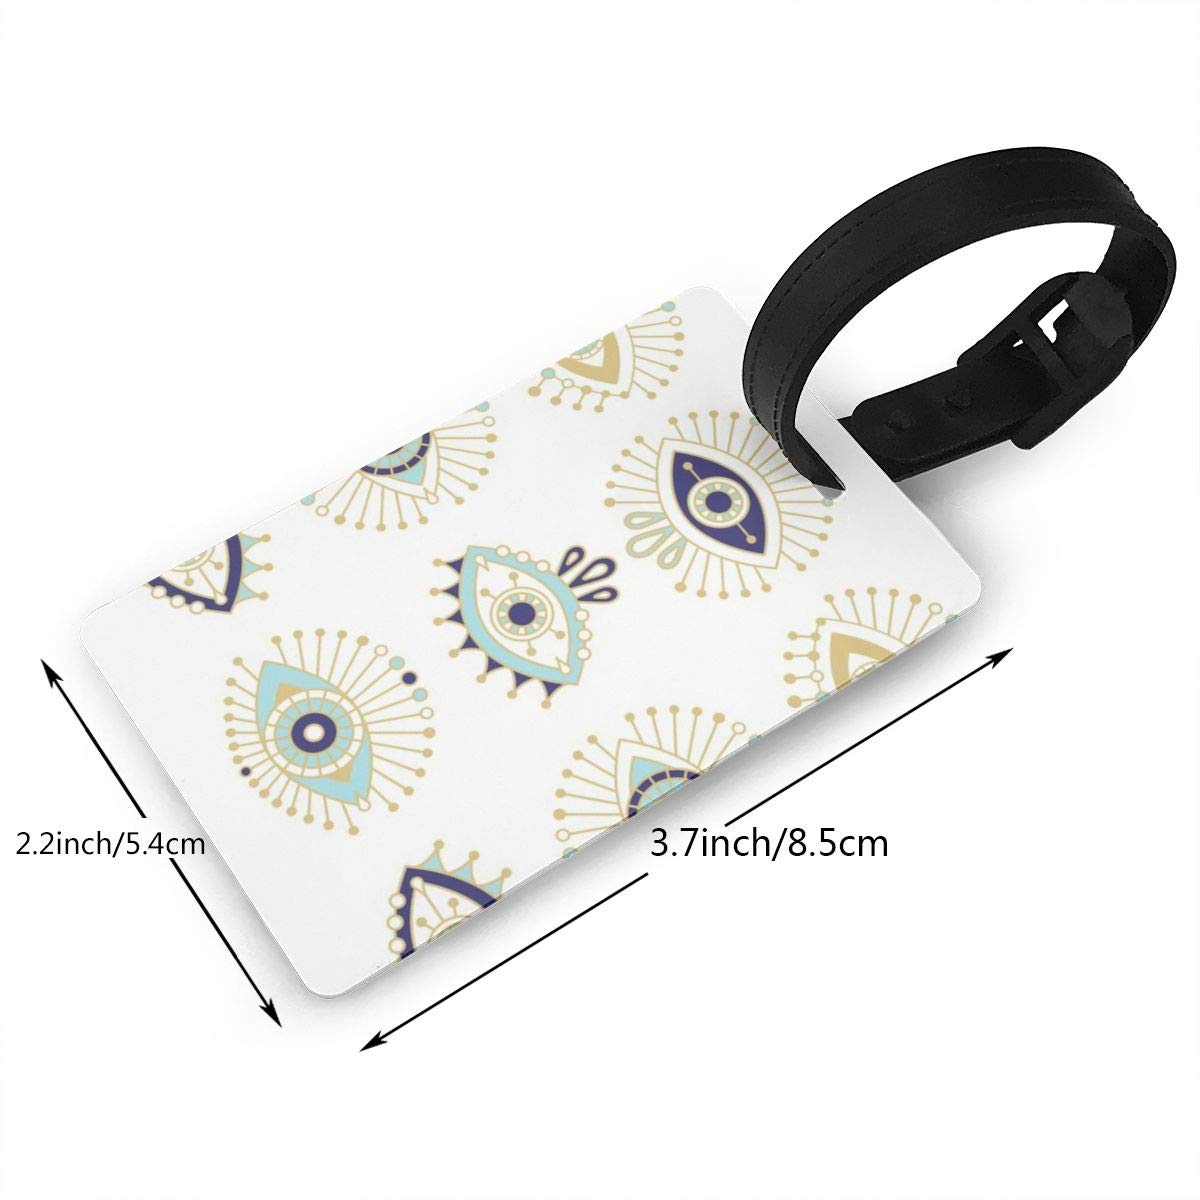 Evil eye collection on white Luggage Tags Suitcase Labels Bag Travel Accessories Set of 2